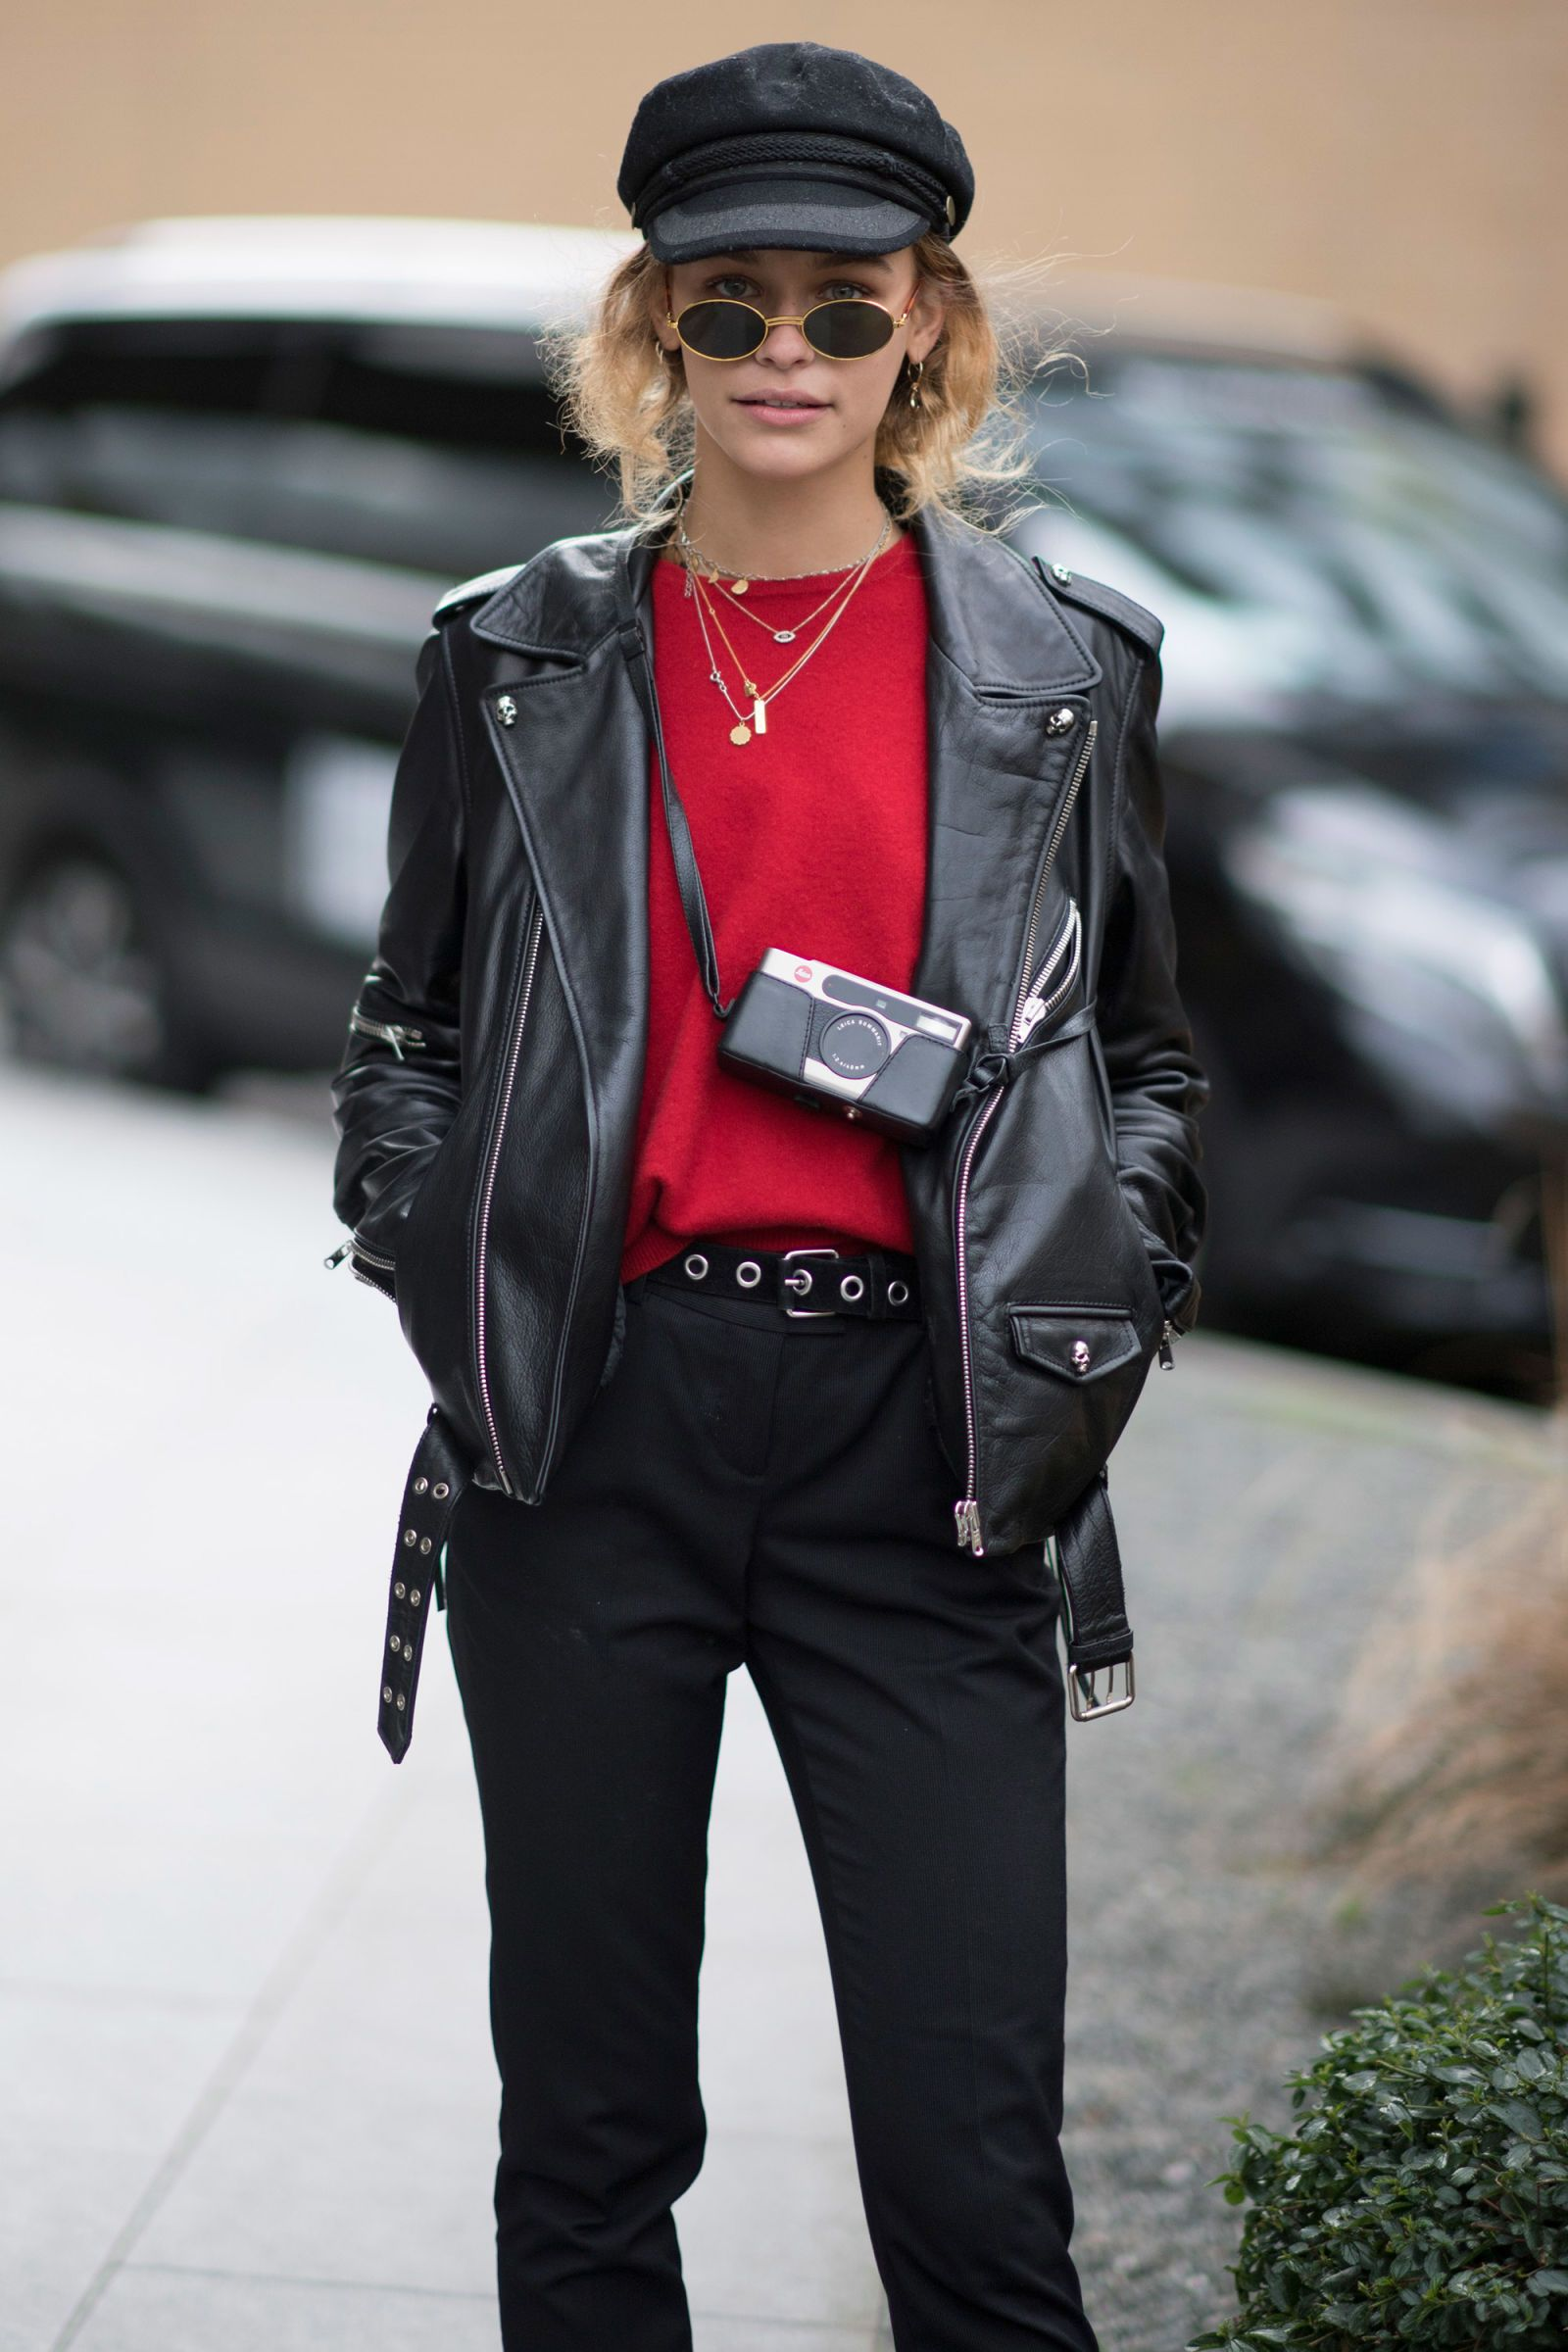 f919749a4f7f4 How to be an Instagram street-style star this season